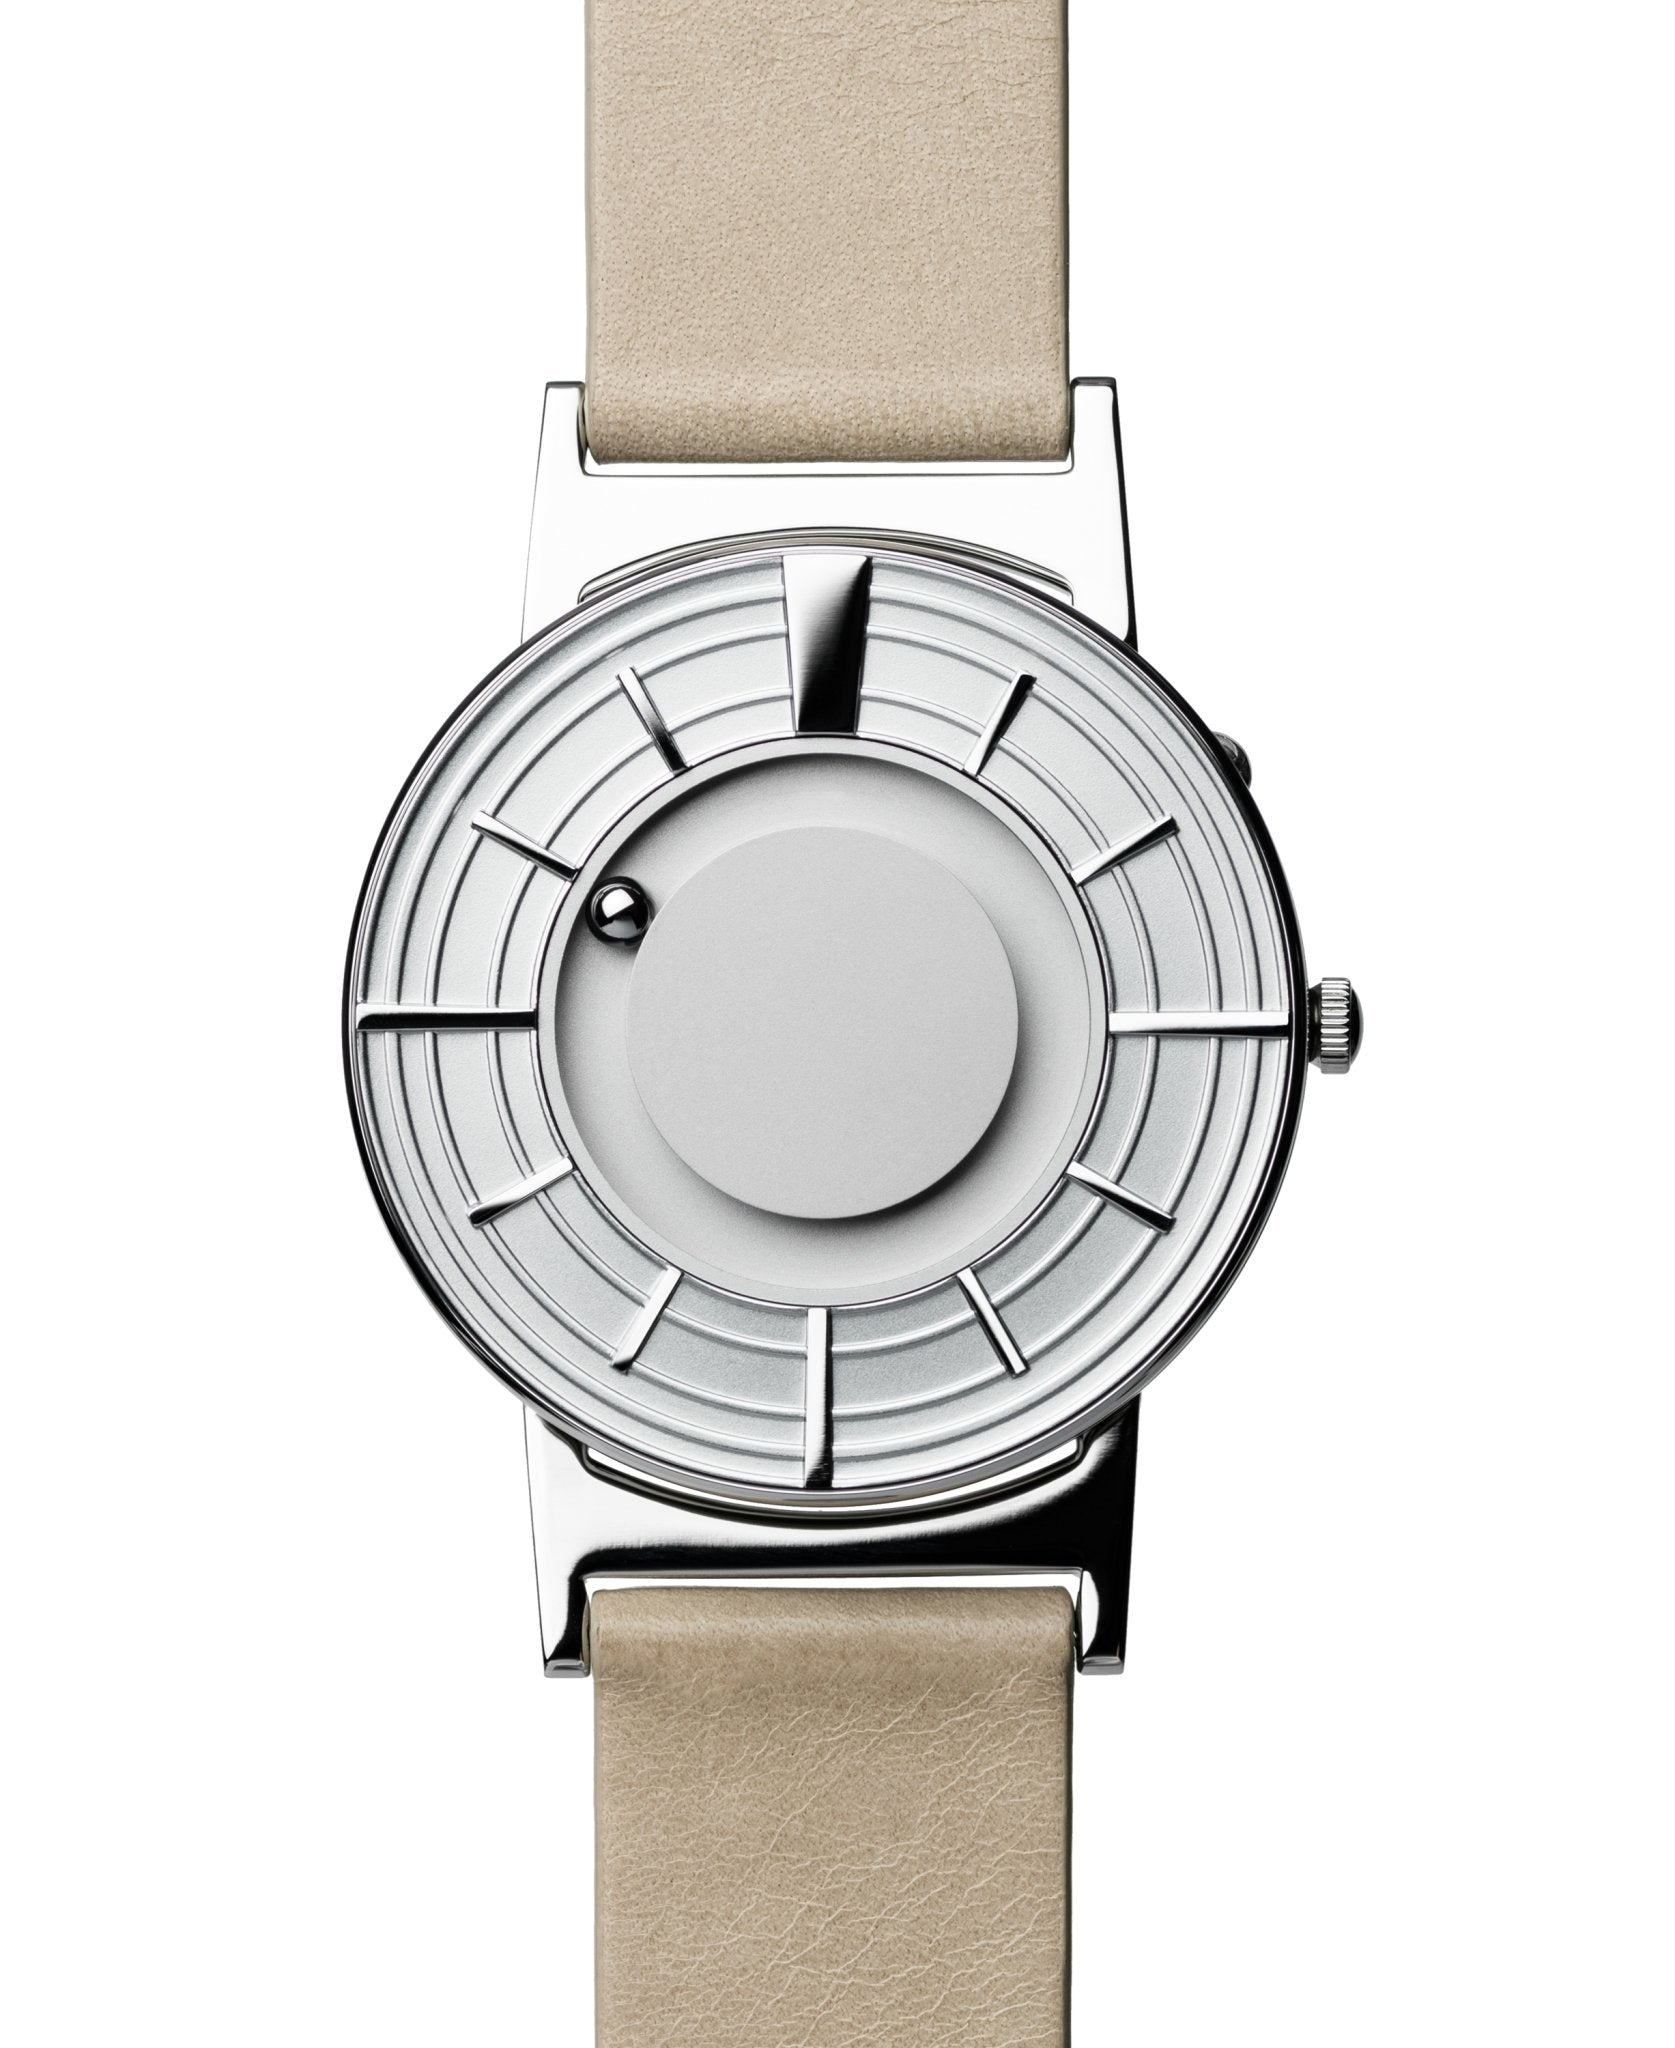 Eone Bradley Edge Silver - Watches & Crystals